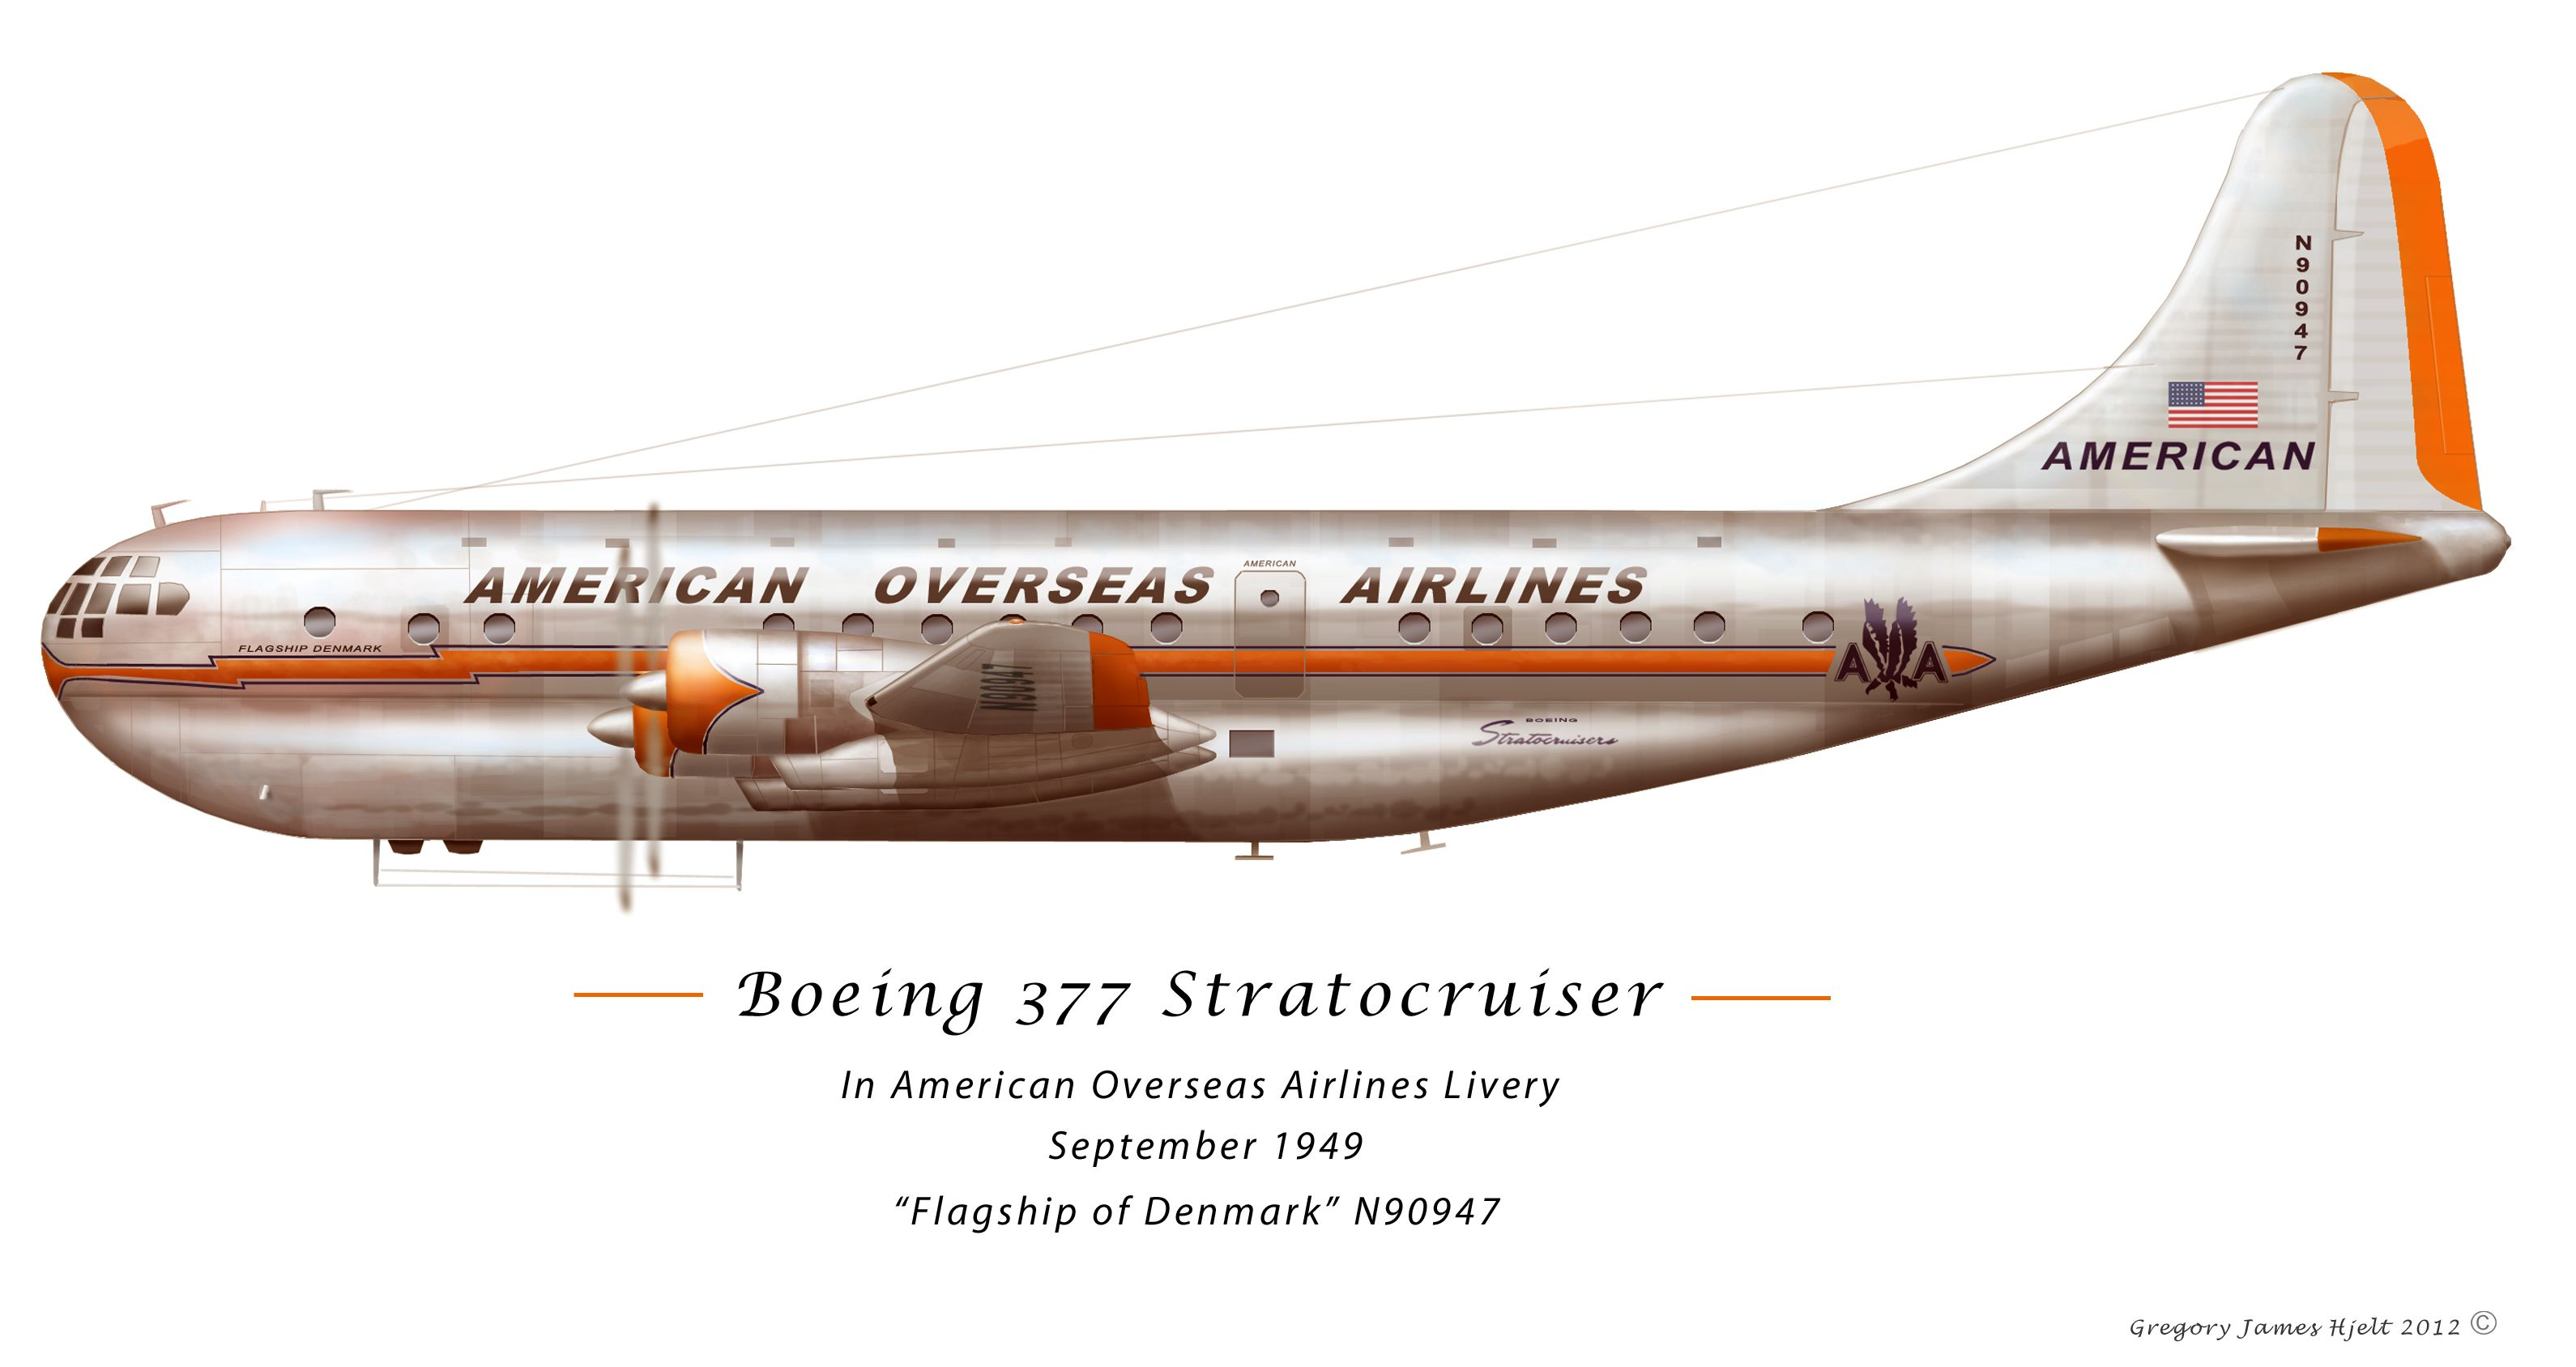 Cutaway of a pan am boeing 377 stratocruiser image from chris sloan - Boeing 377 Stratocruiser